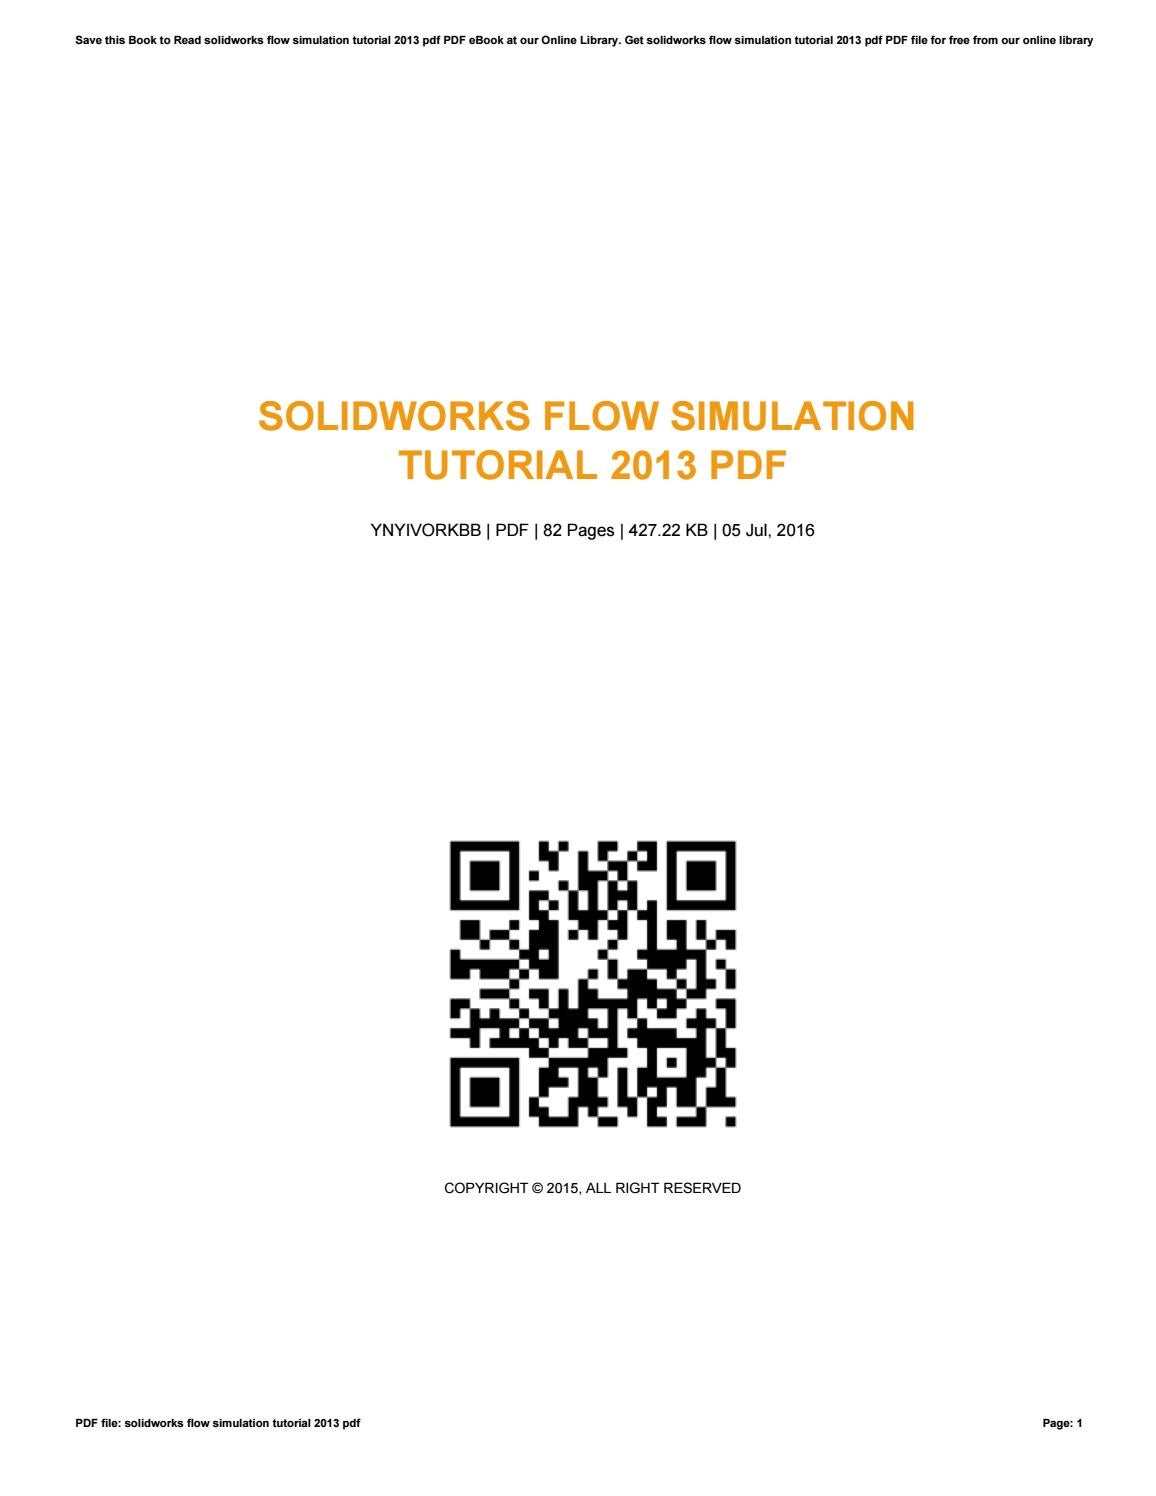 Solidworks Flow Simulation Tutorial 2013 Pdf By Jeffreybiller4779